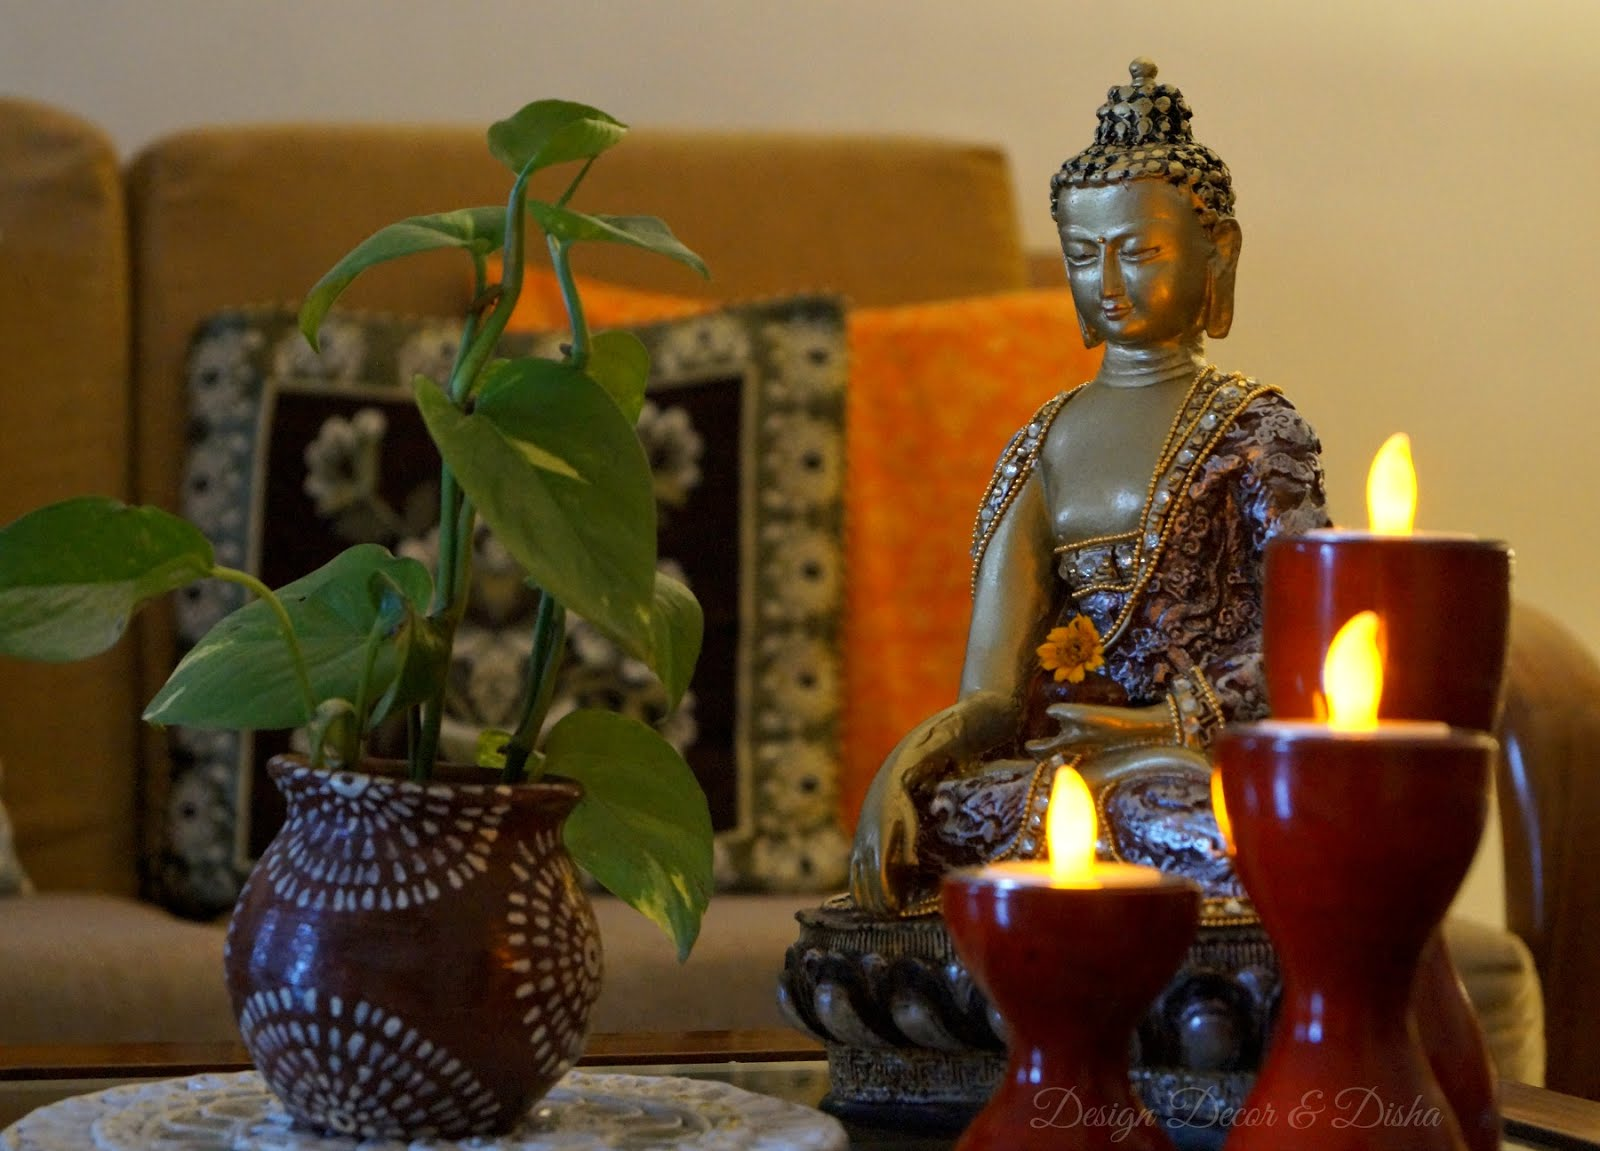 Bouddha Deco. where to find buddha statues home decor the minimalist ...